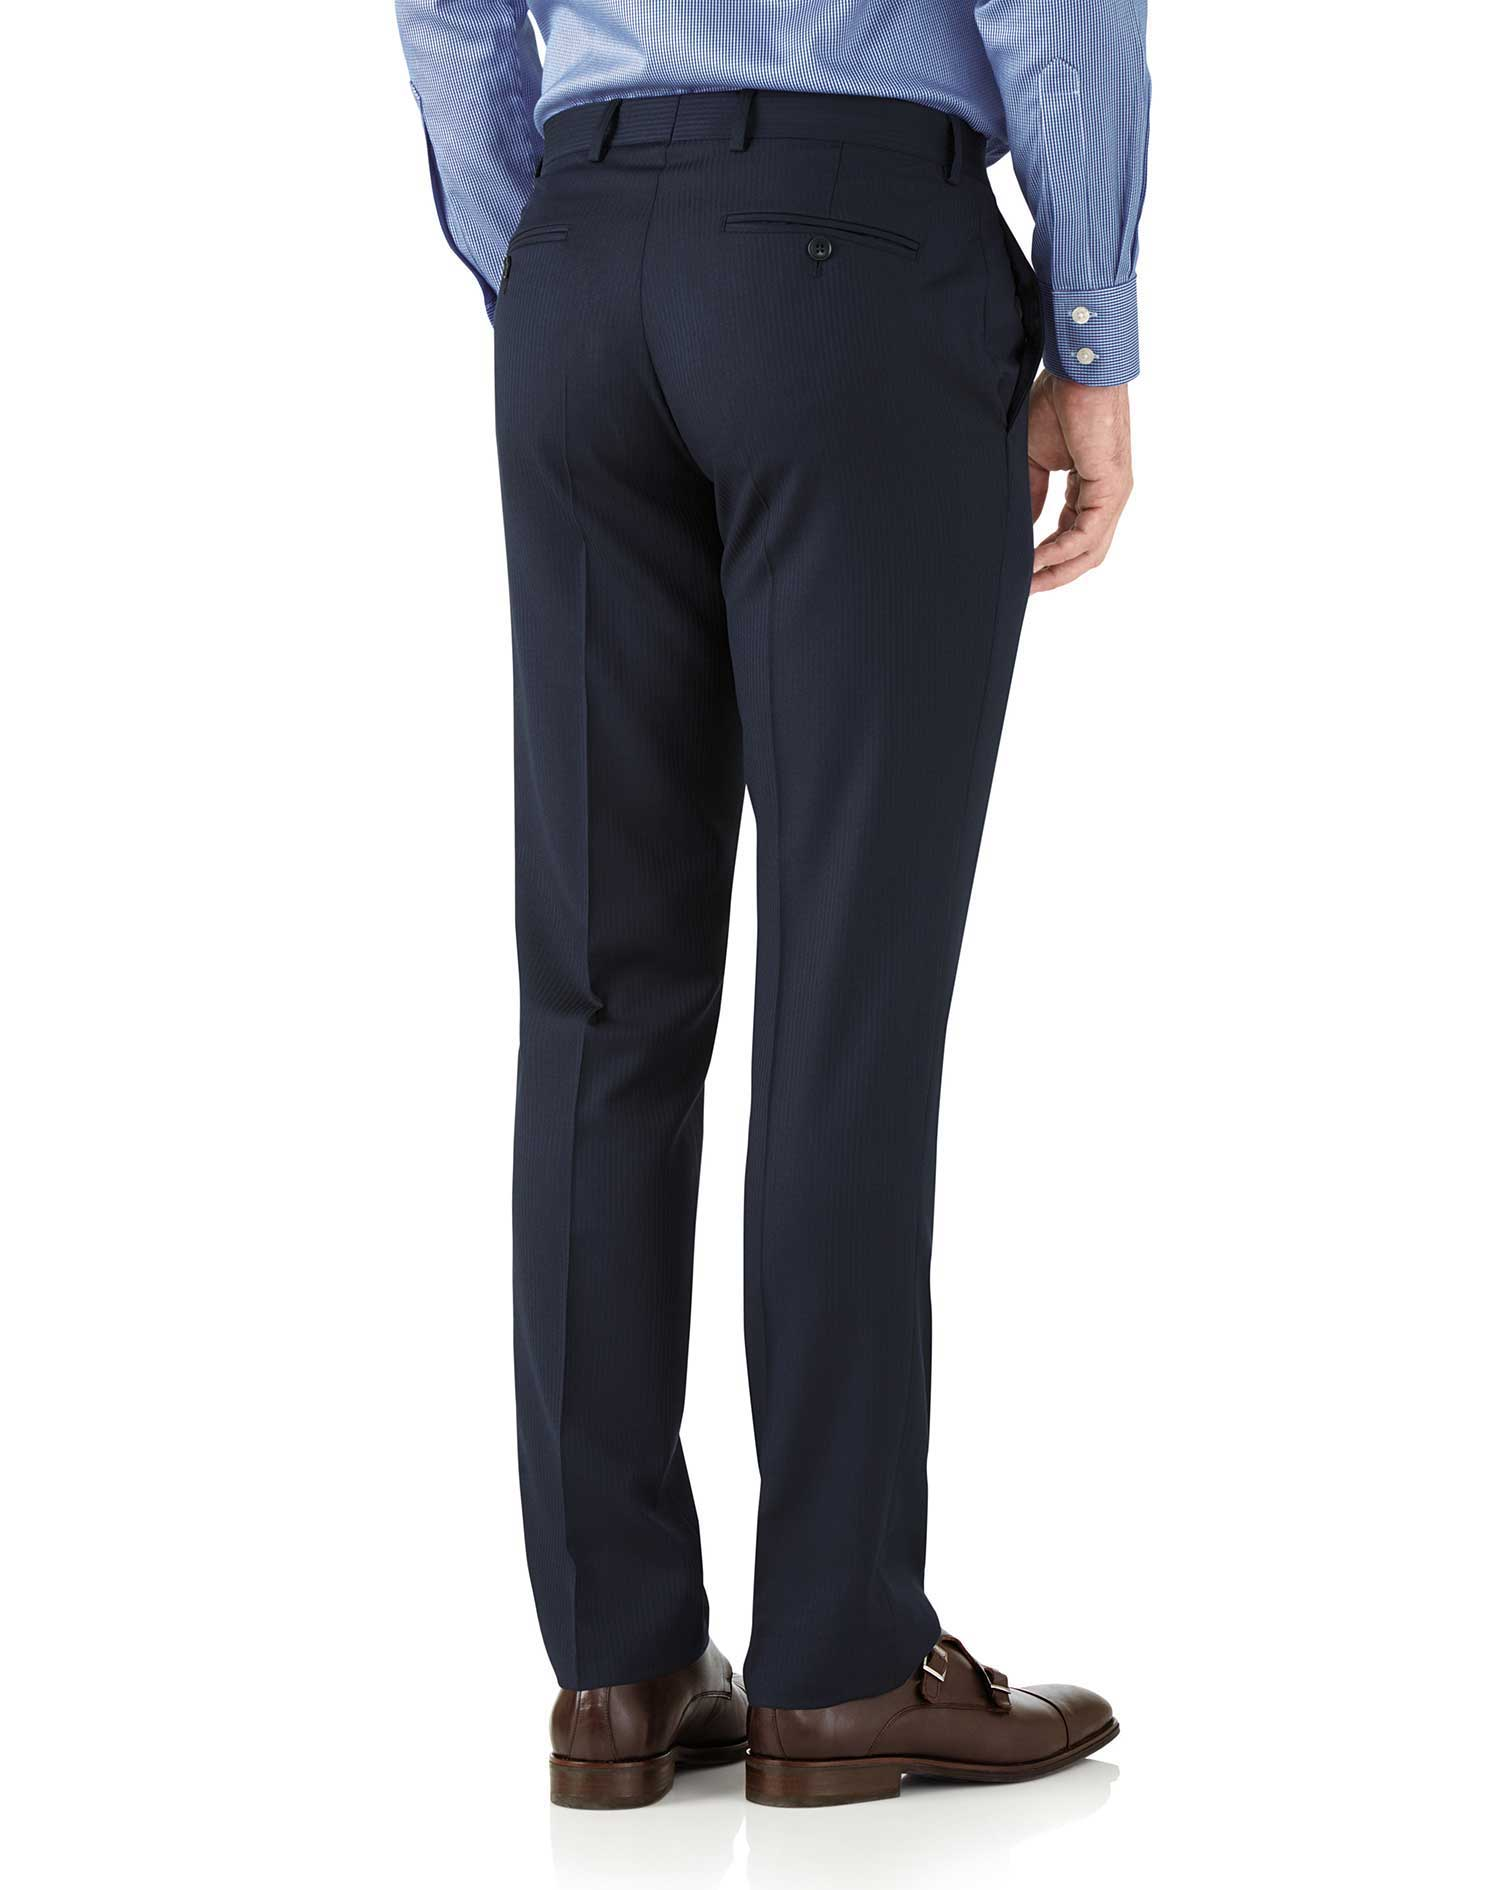 Navy classic fit herringbone Italian suit pants